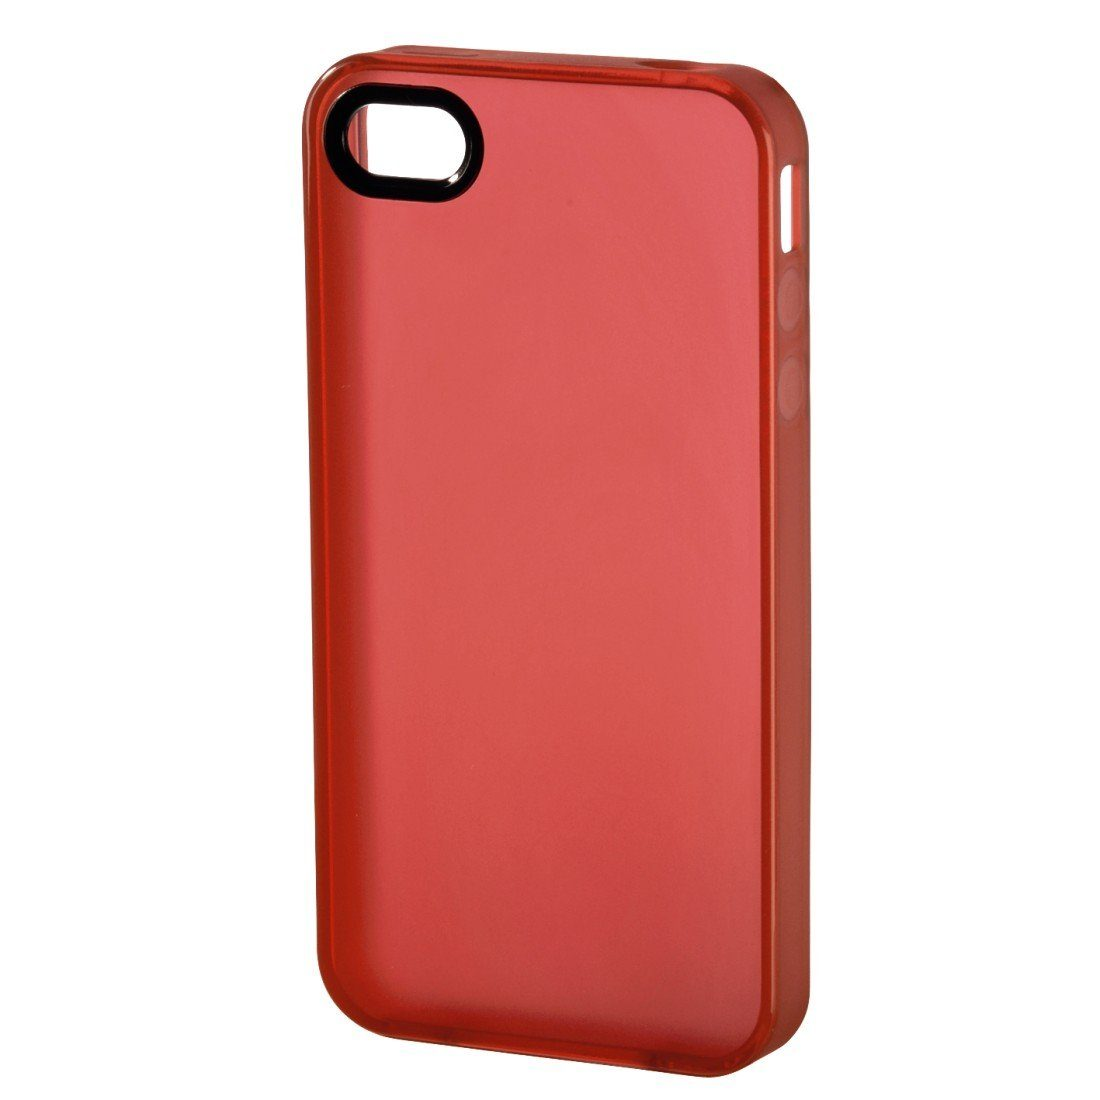 Hama Handy-Cover TPU für Apple iPhone 4/4S, Rot